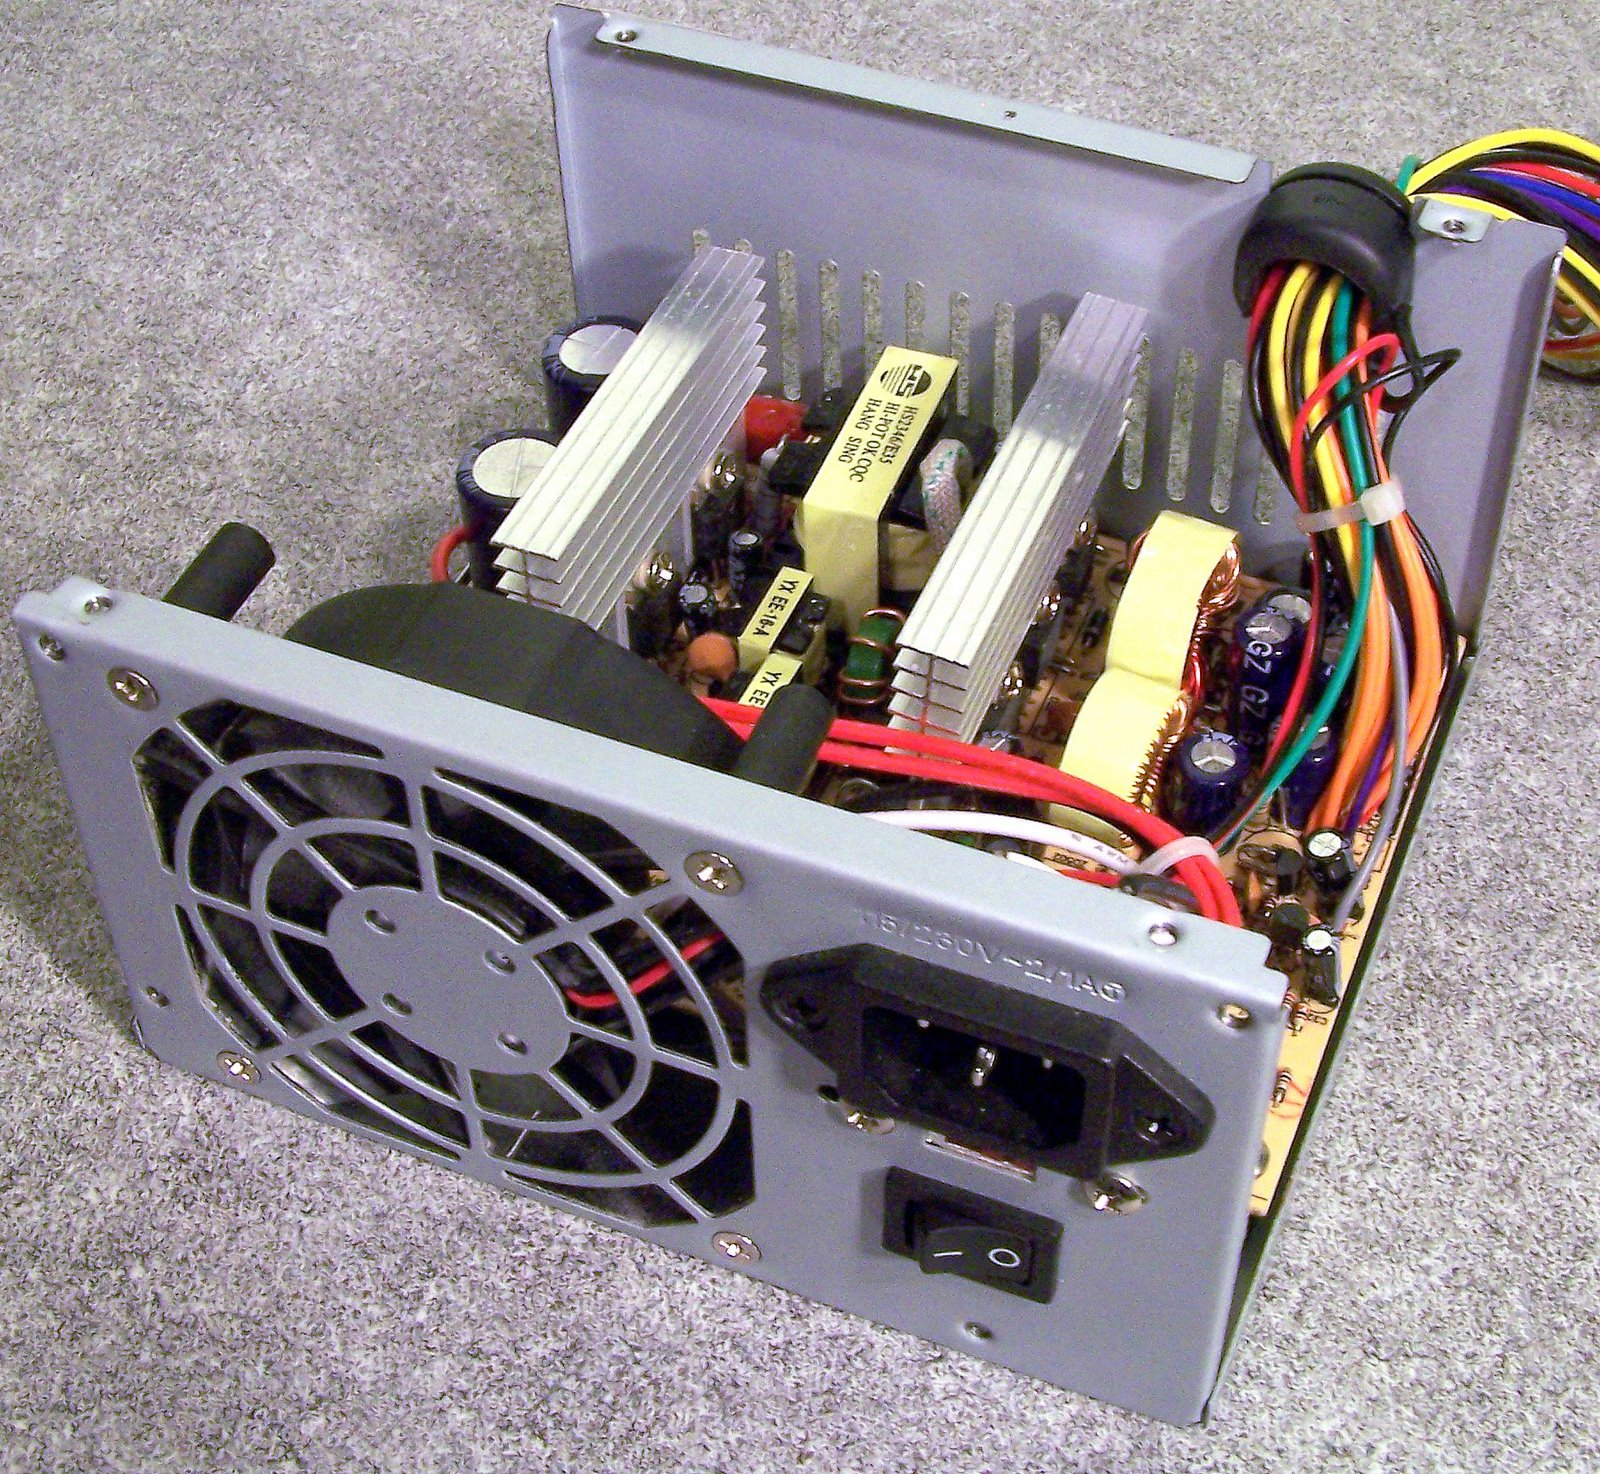 After installing the power supply, everything seemed to power up just